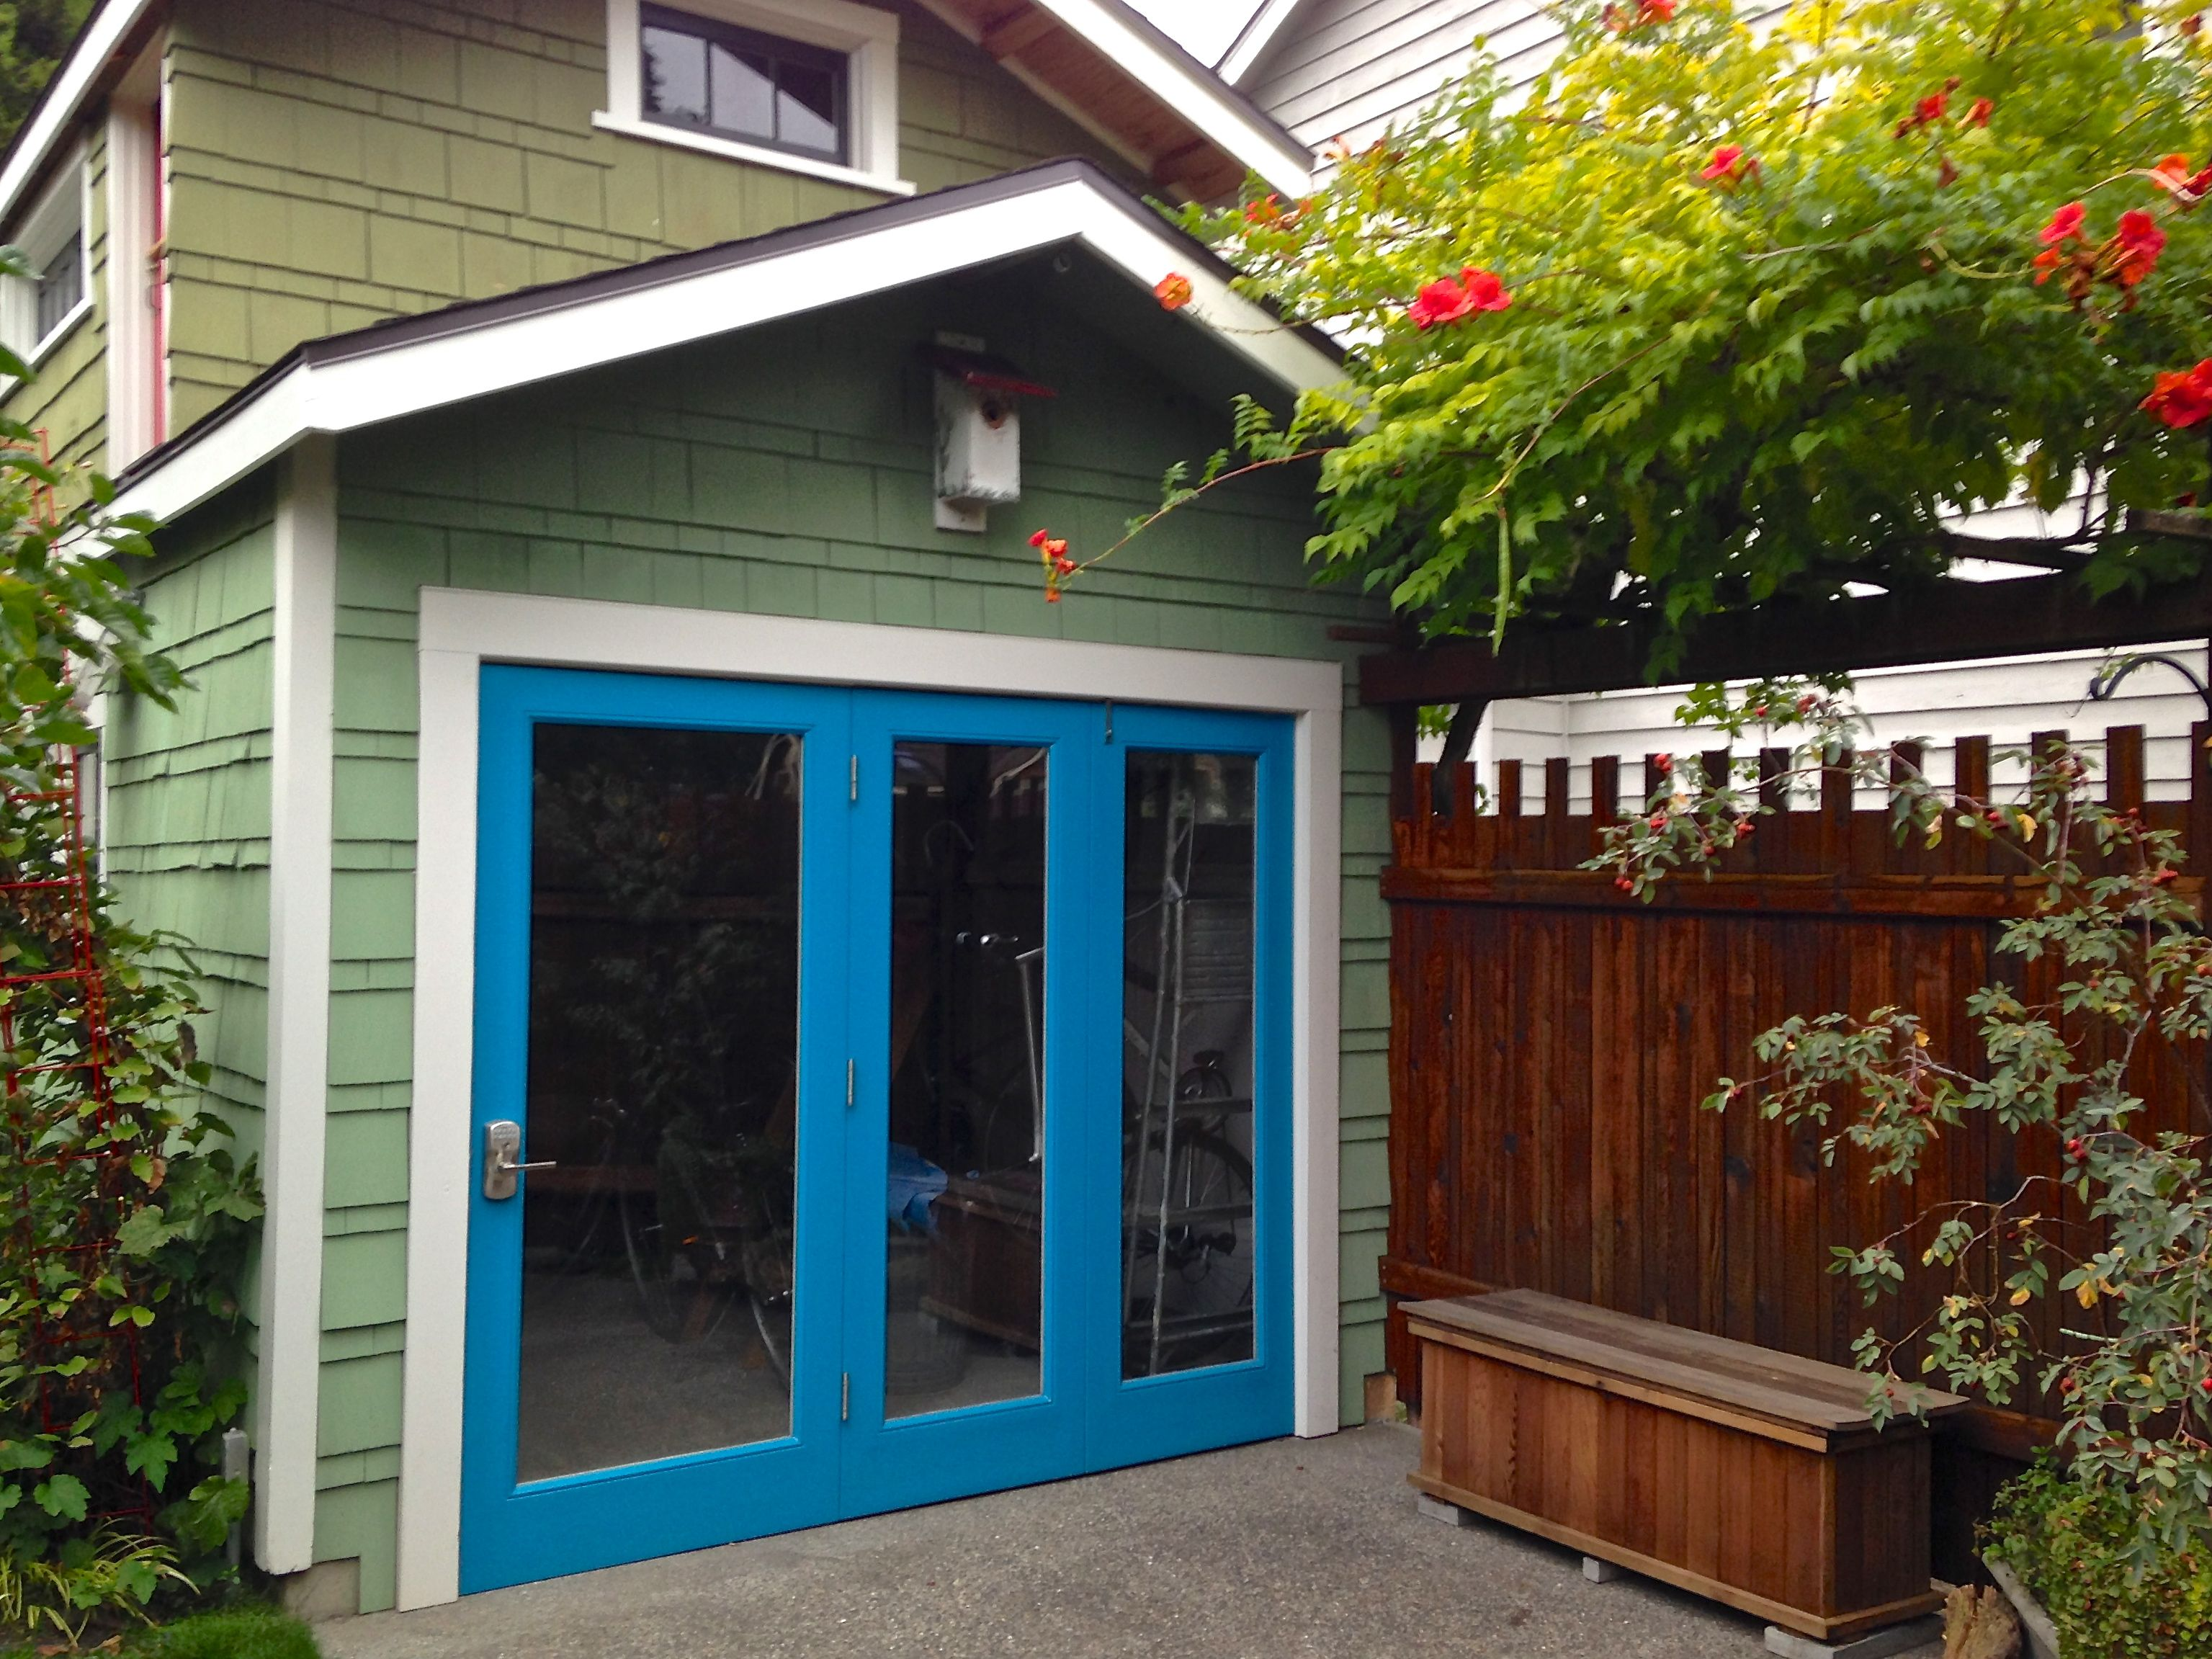 Folding glass doors on garage allow for easy access and